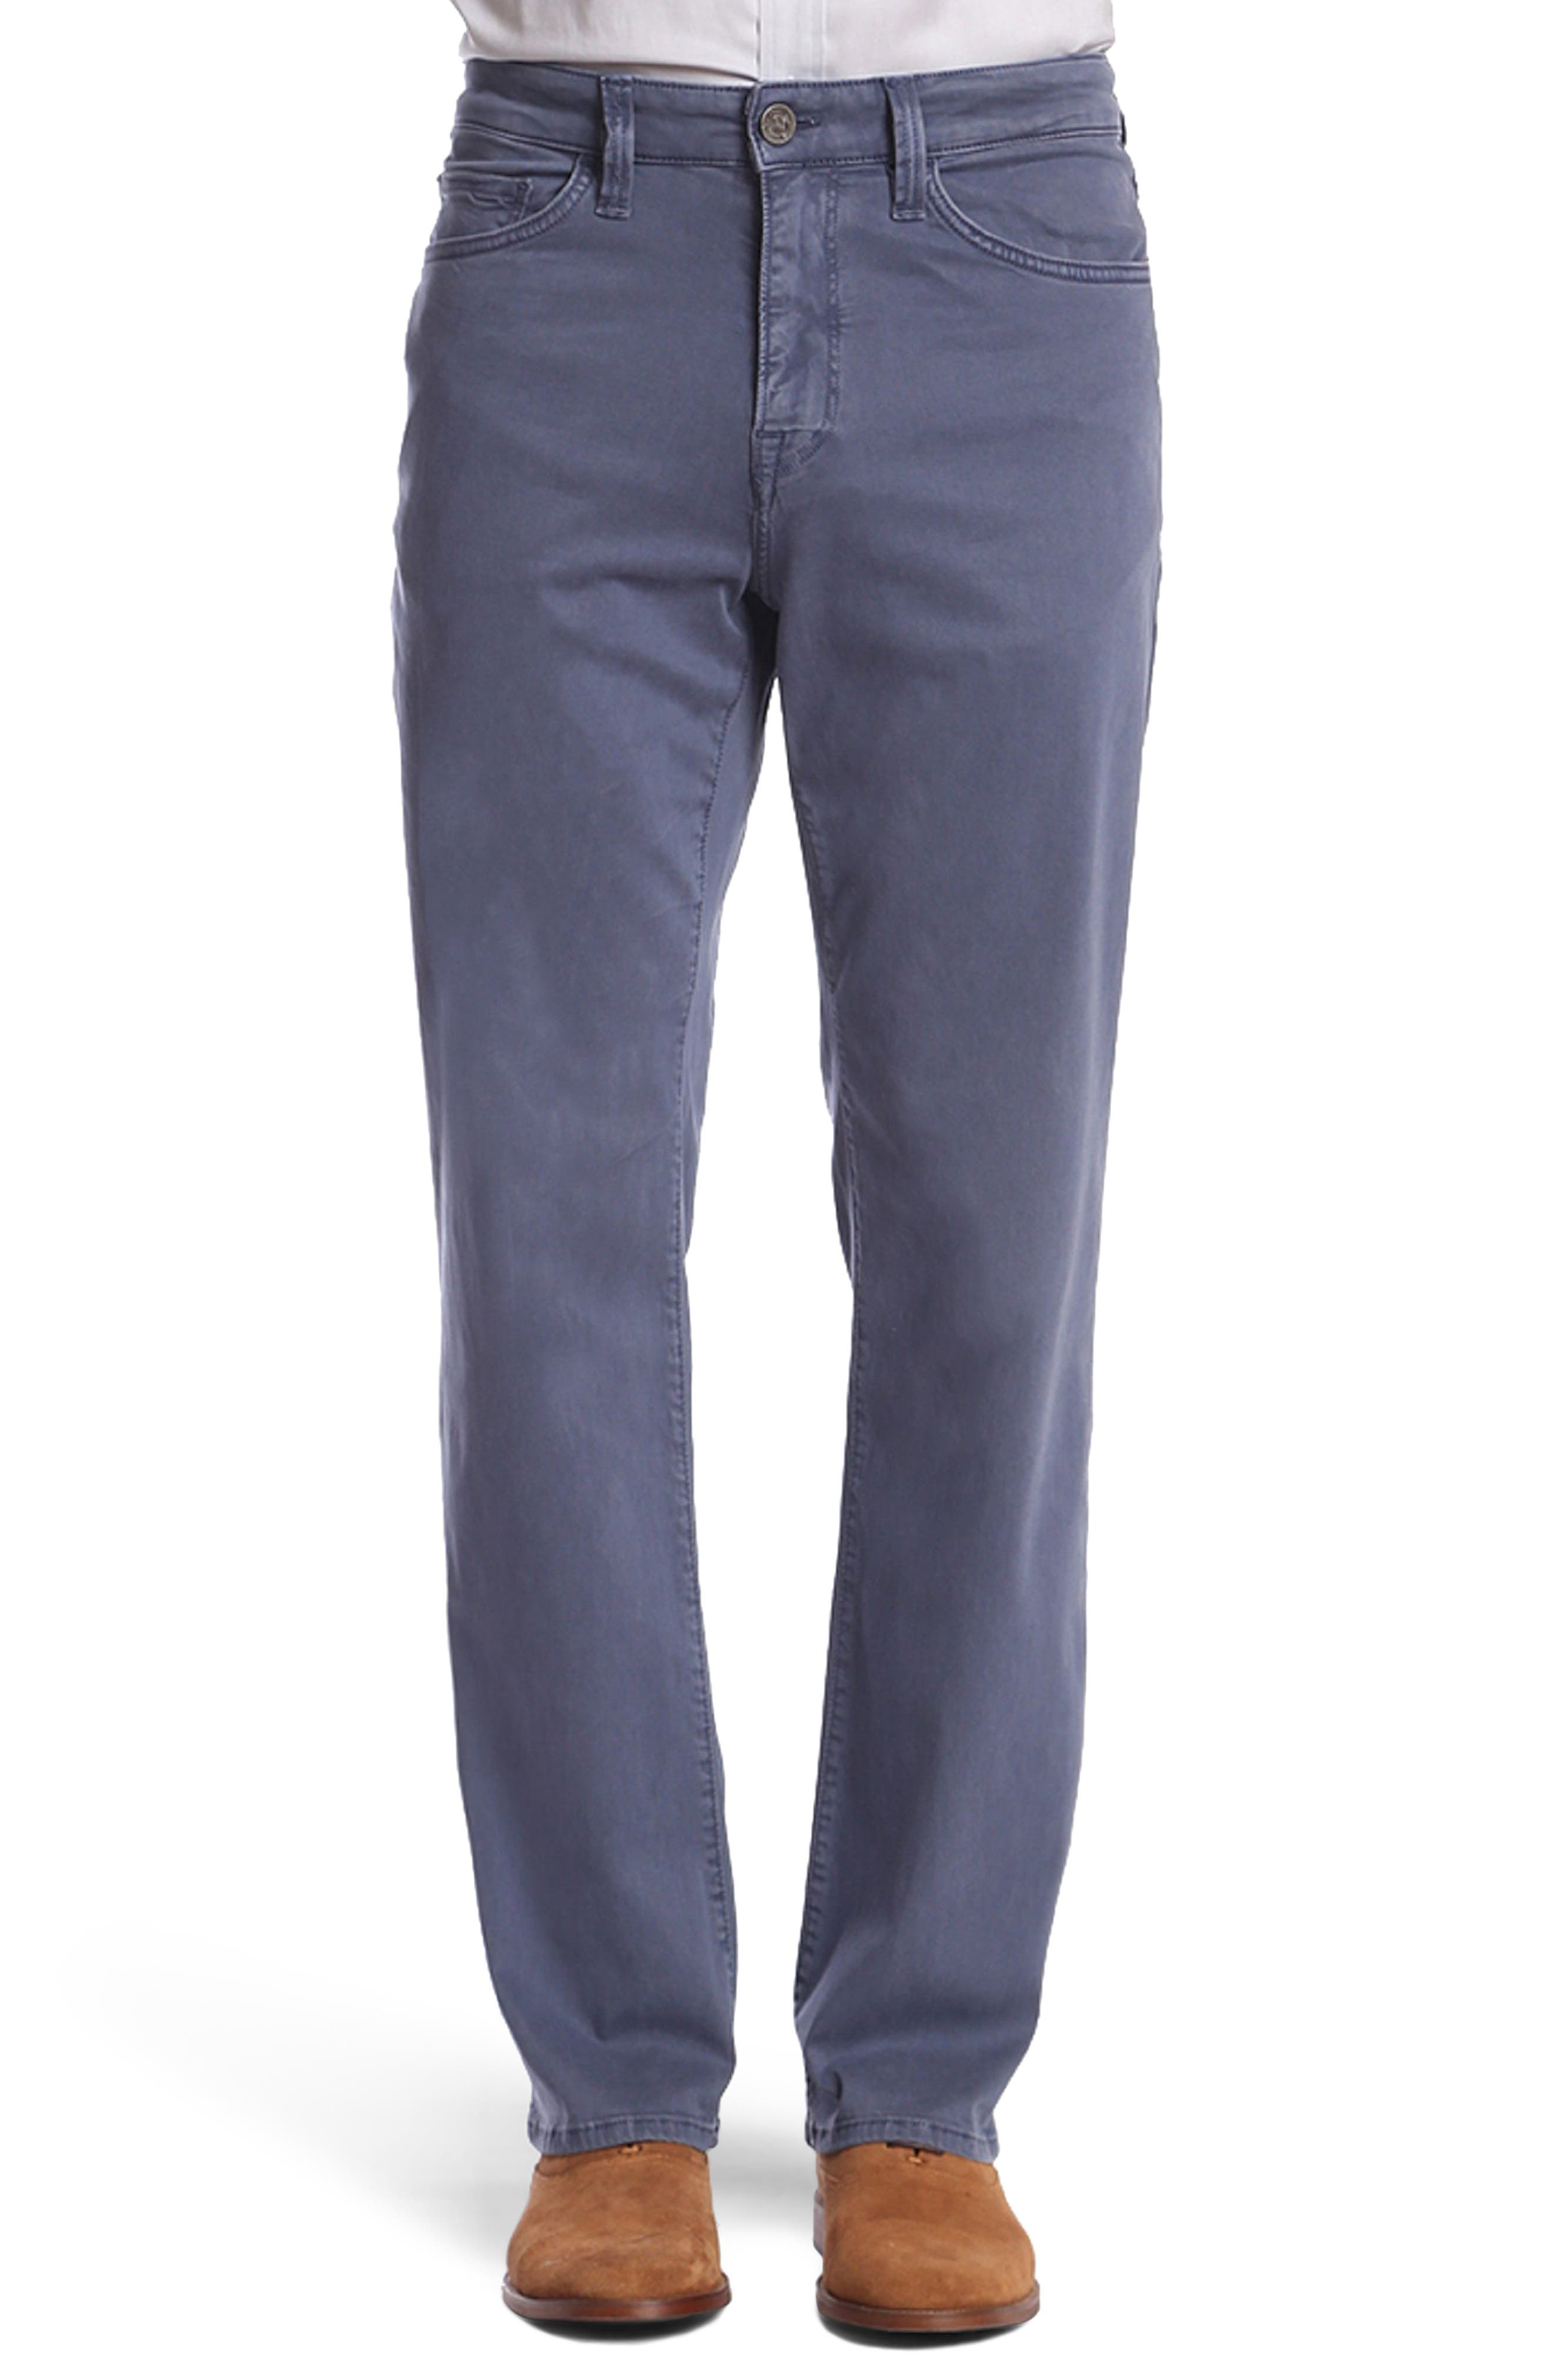 34 Heritage Charisma Relaxed Fit Jeans (Horizon)